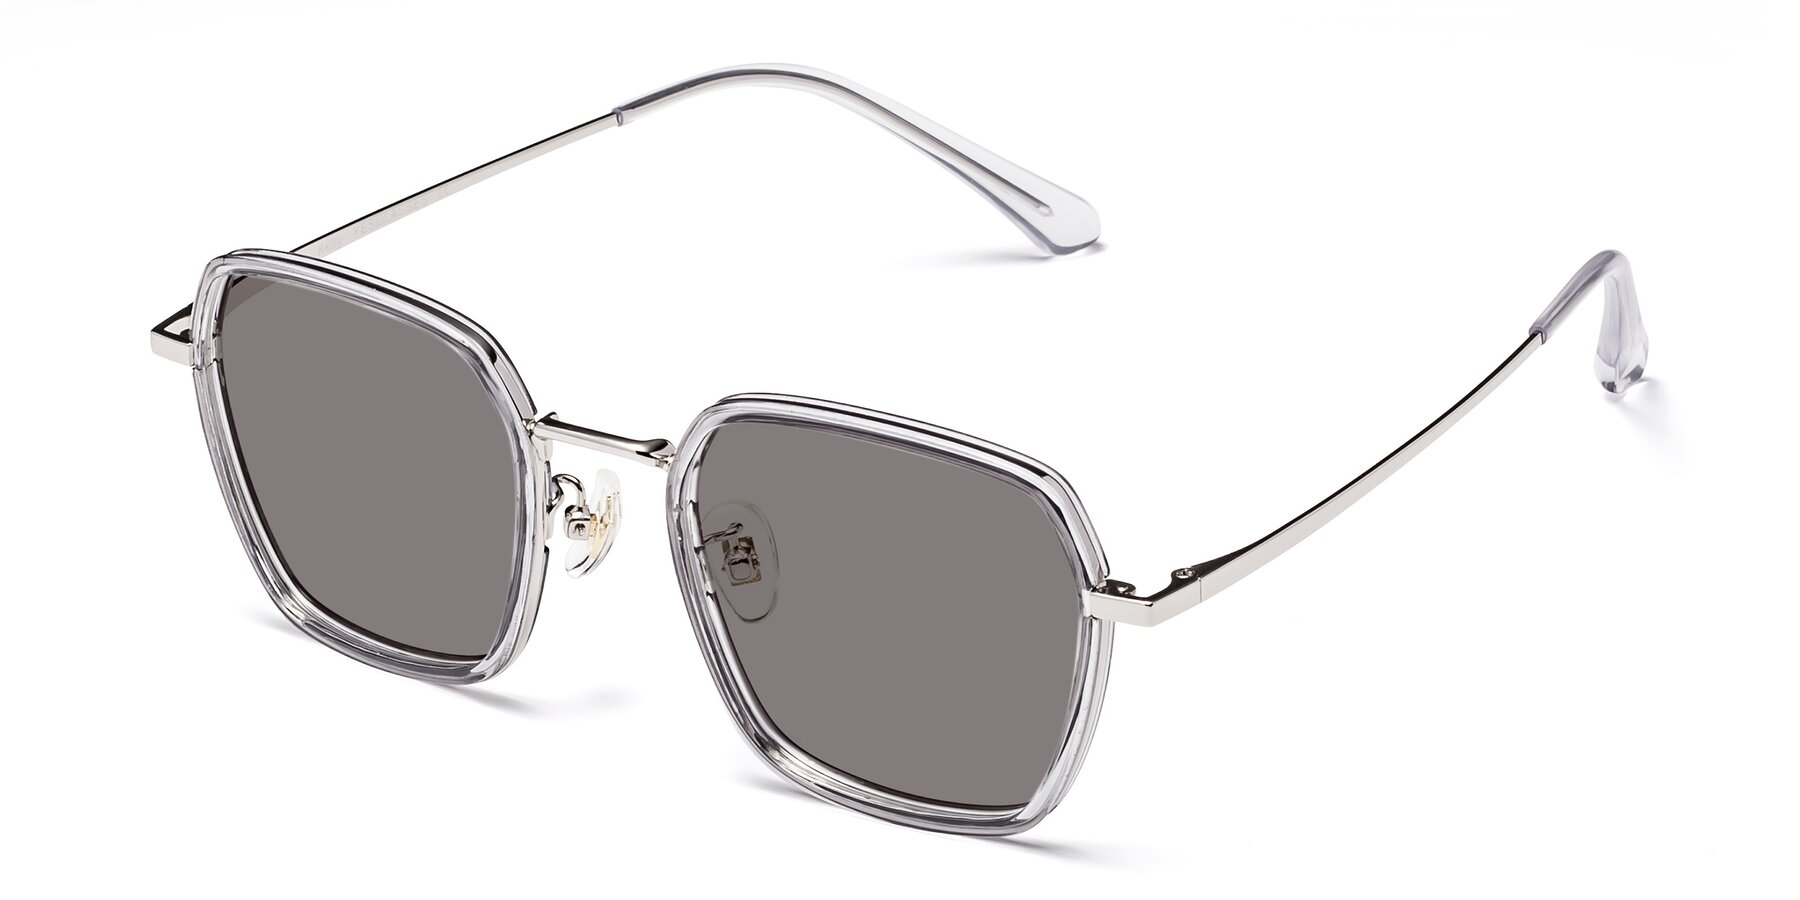 Angle of Kelly in Light Gray-Silver with Medium Gray Tinted Lenses